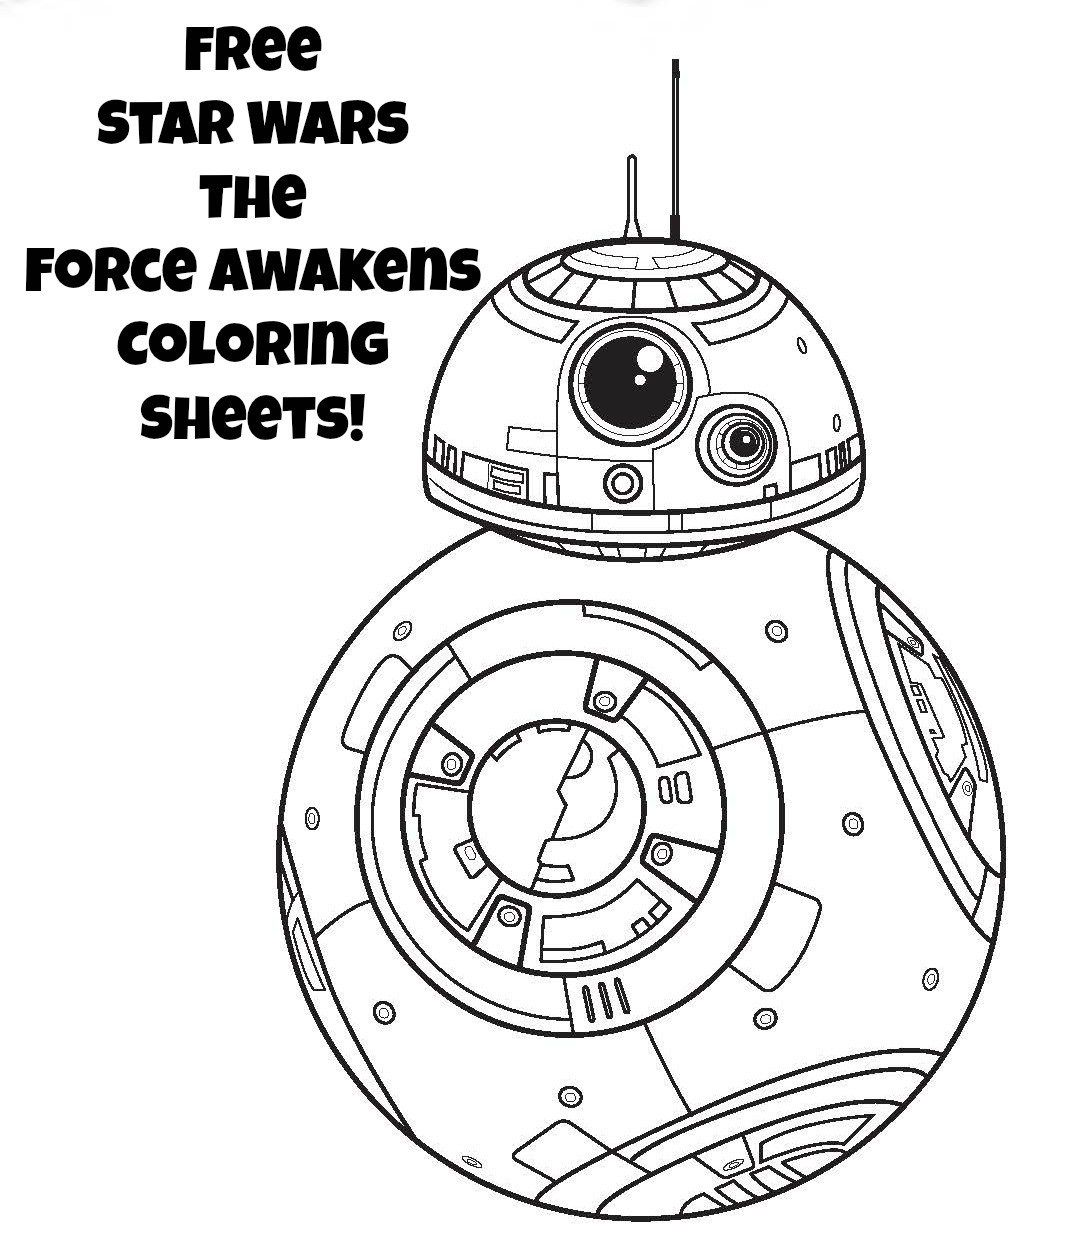 27 Brilliant Image Of Free Star Wars Coloring Pages Entitlementtrap Com Star Coloring Pages Star Wars Coloring Book Star Wars Colors